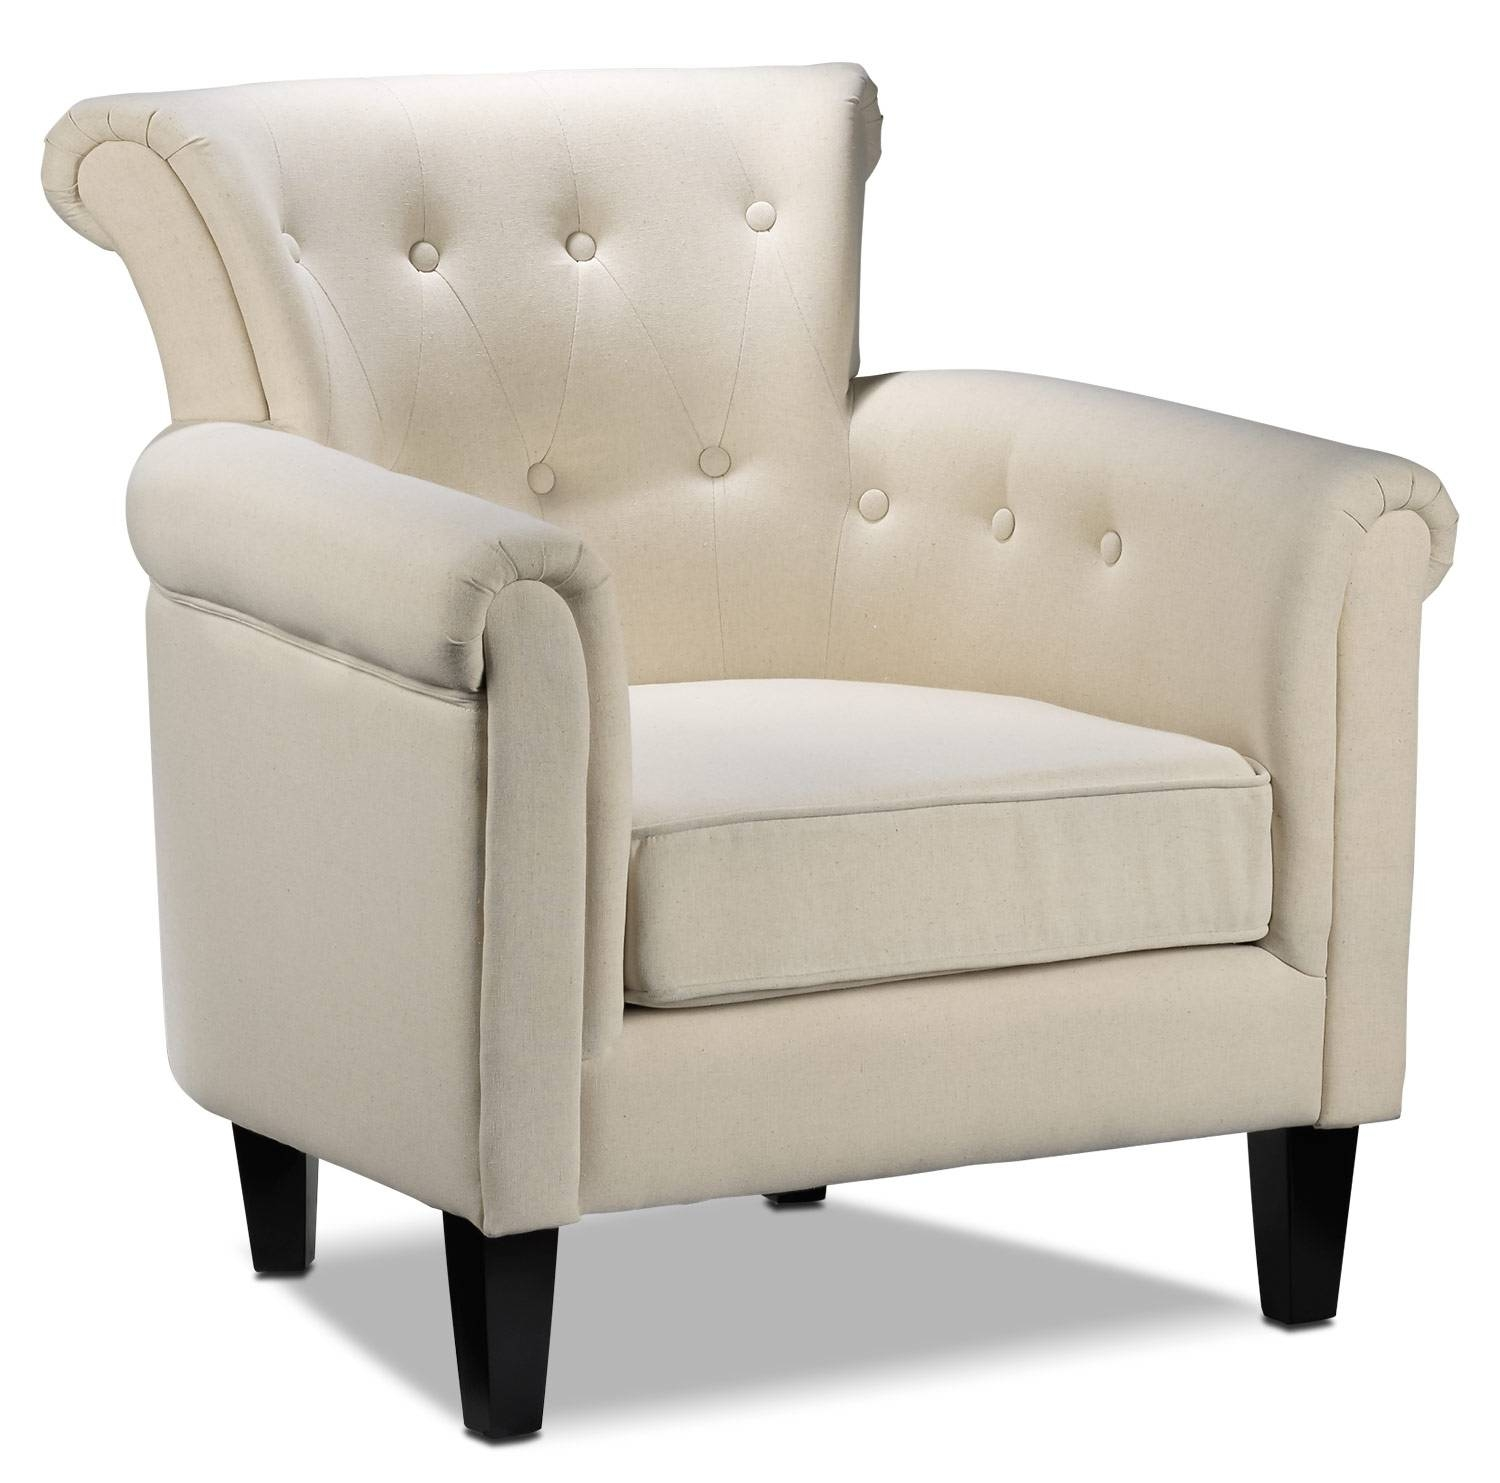 Astonishing Decorative Accent Chairs Furniture Small Accent Chairs inside Accent Sofa Chairs (Image 9 of 30)